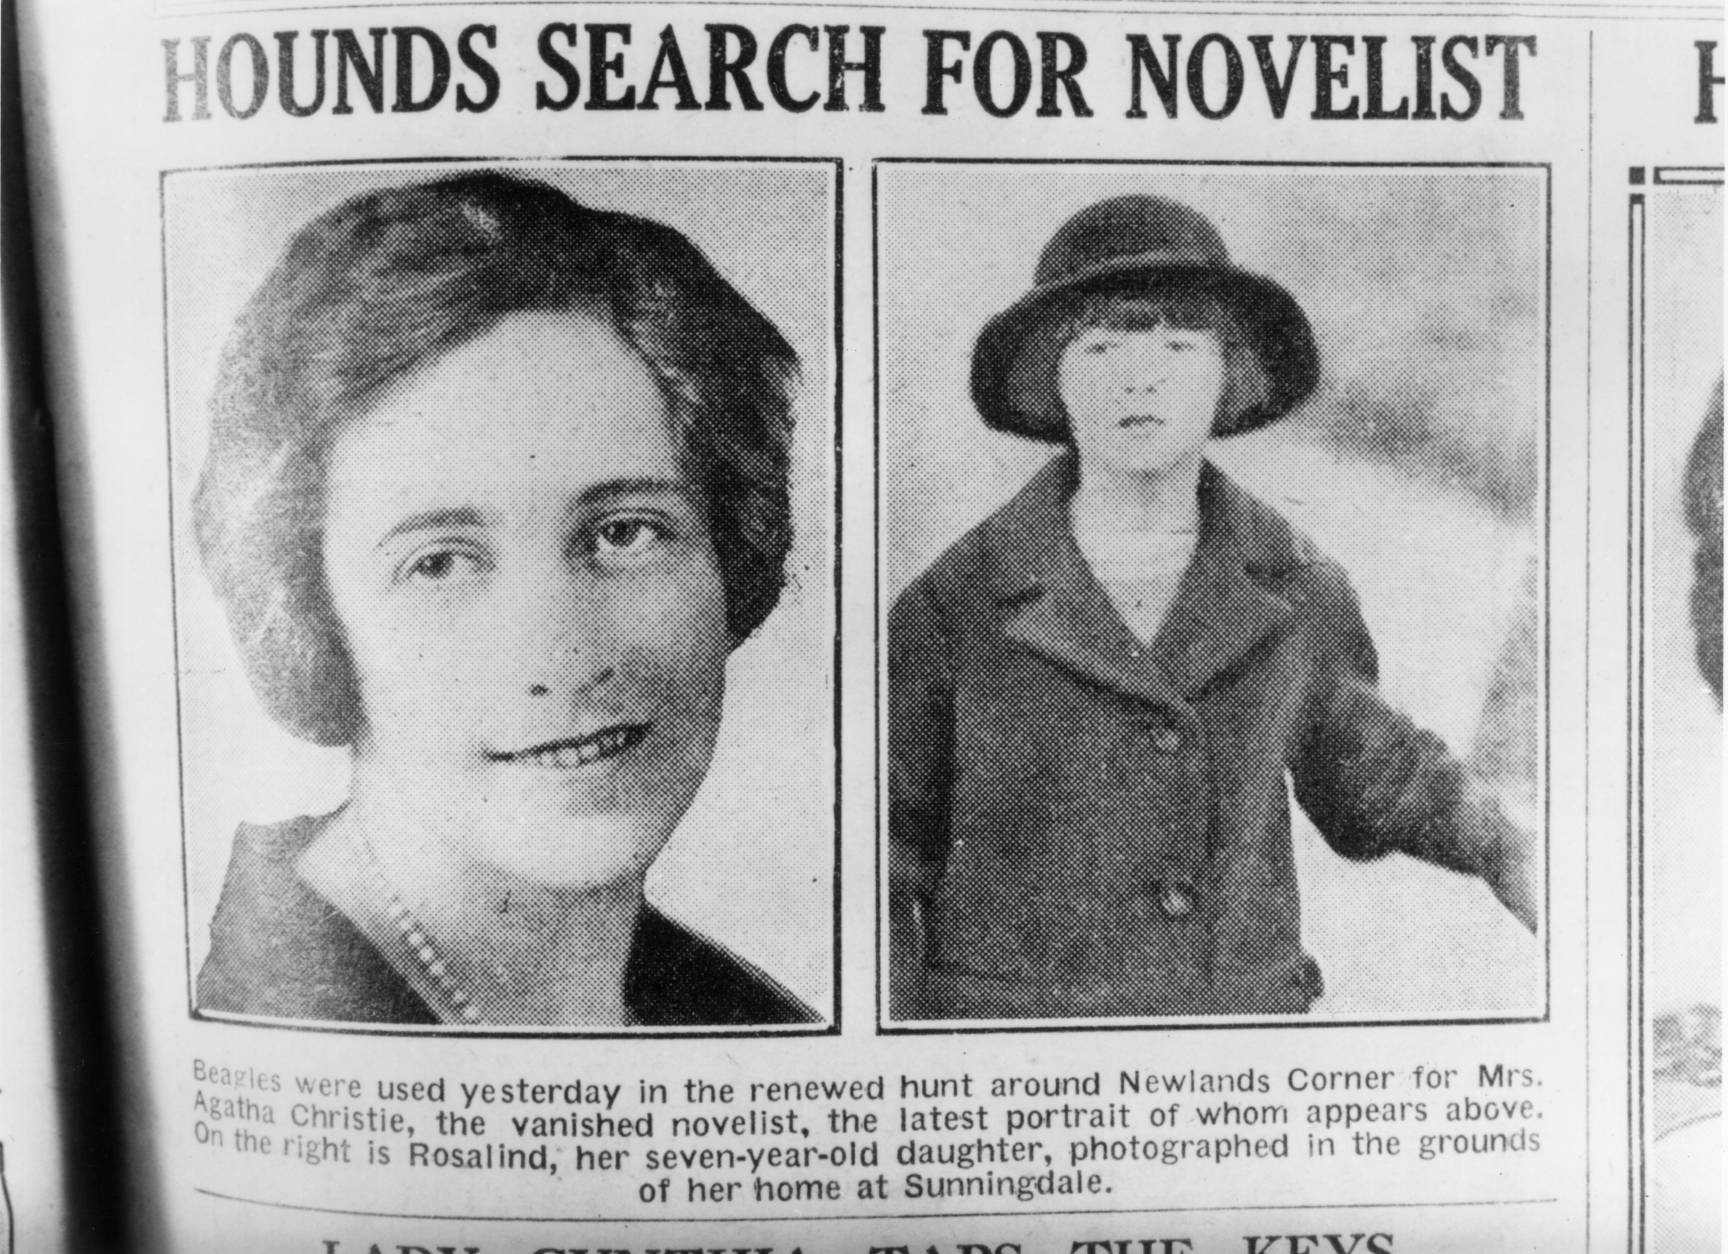 1926:  English crime writer Agatha Christie (1890 - 1976) and her daughter, Rosalind, (right), are featured in a newspaper article reporting the mysterious disappearance of the novelist.  (Photo by Hulton Archive/Getty Images)